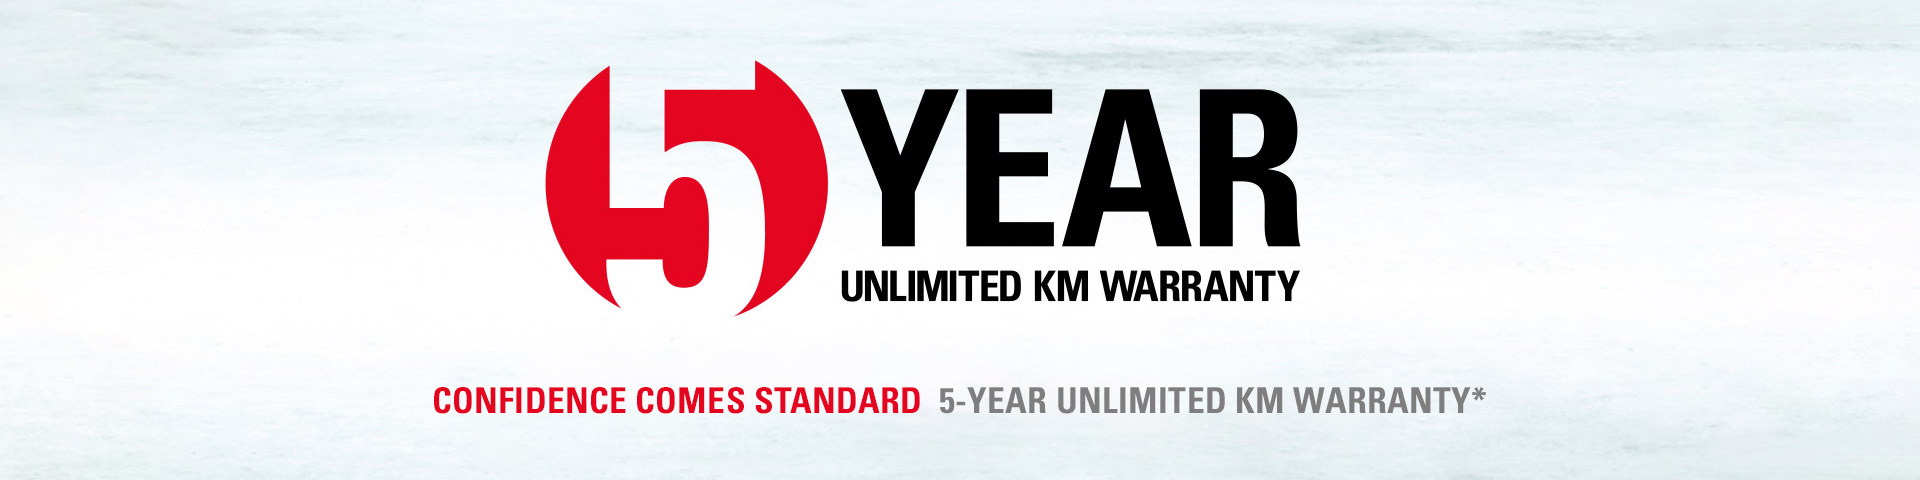 Unlimited KM Warranty